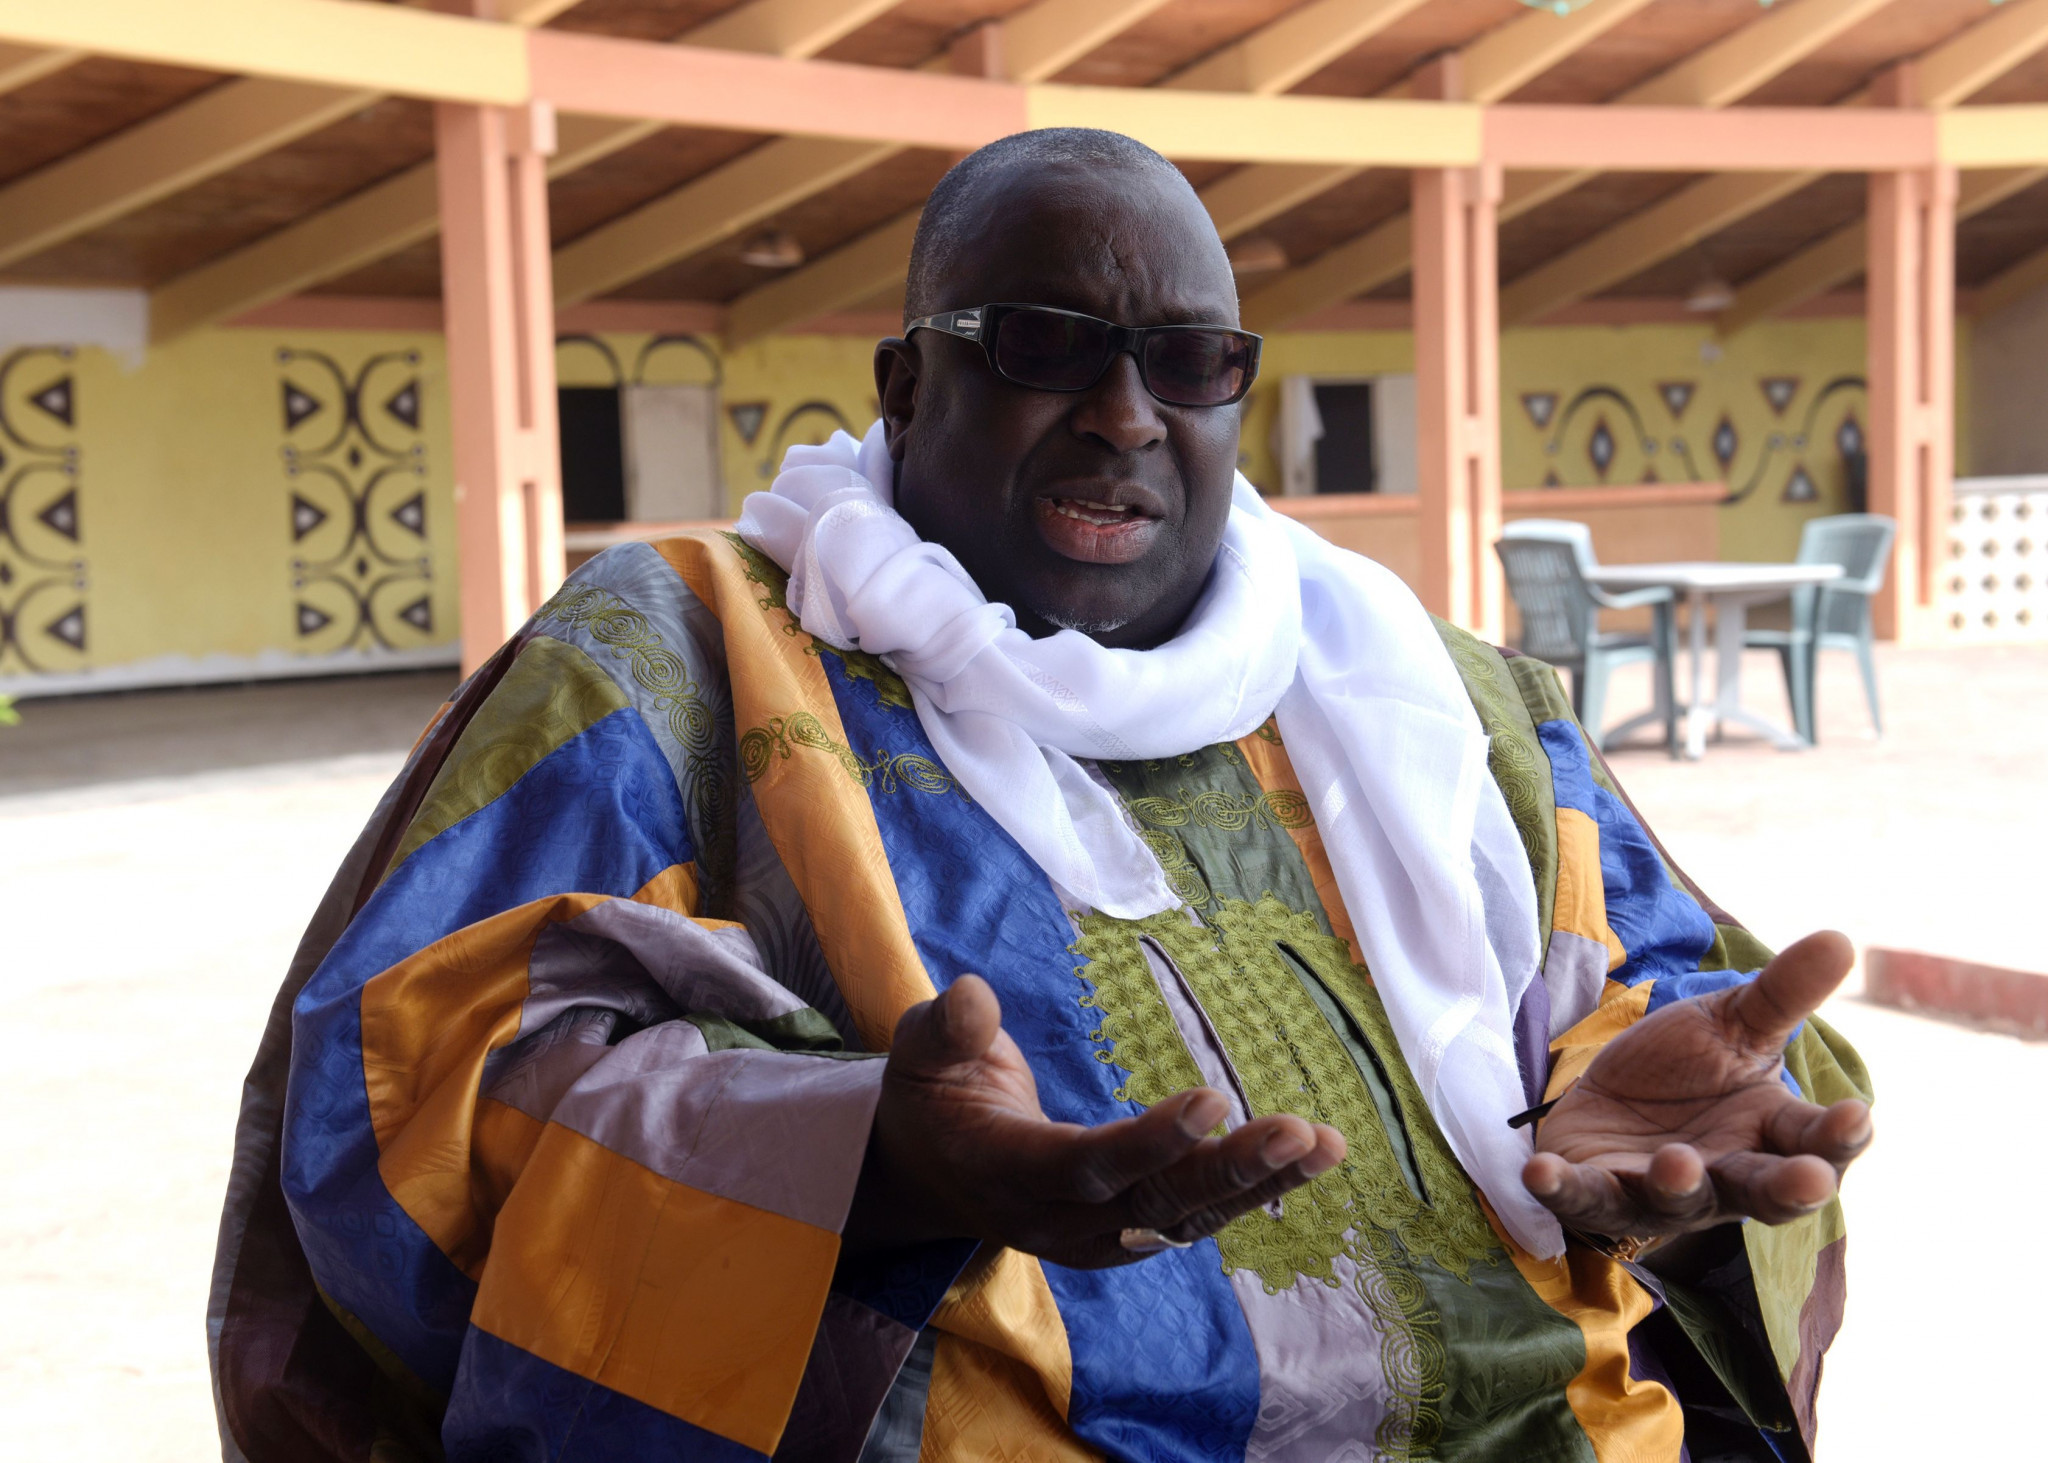 Papa Diack requests further postponement of trial due to inability of lawyers to travel